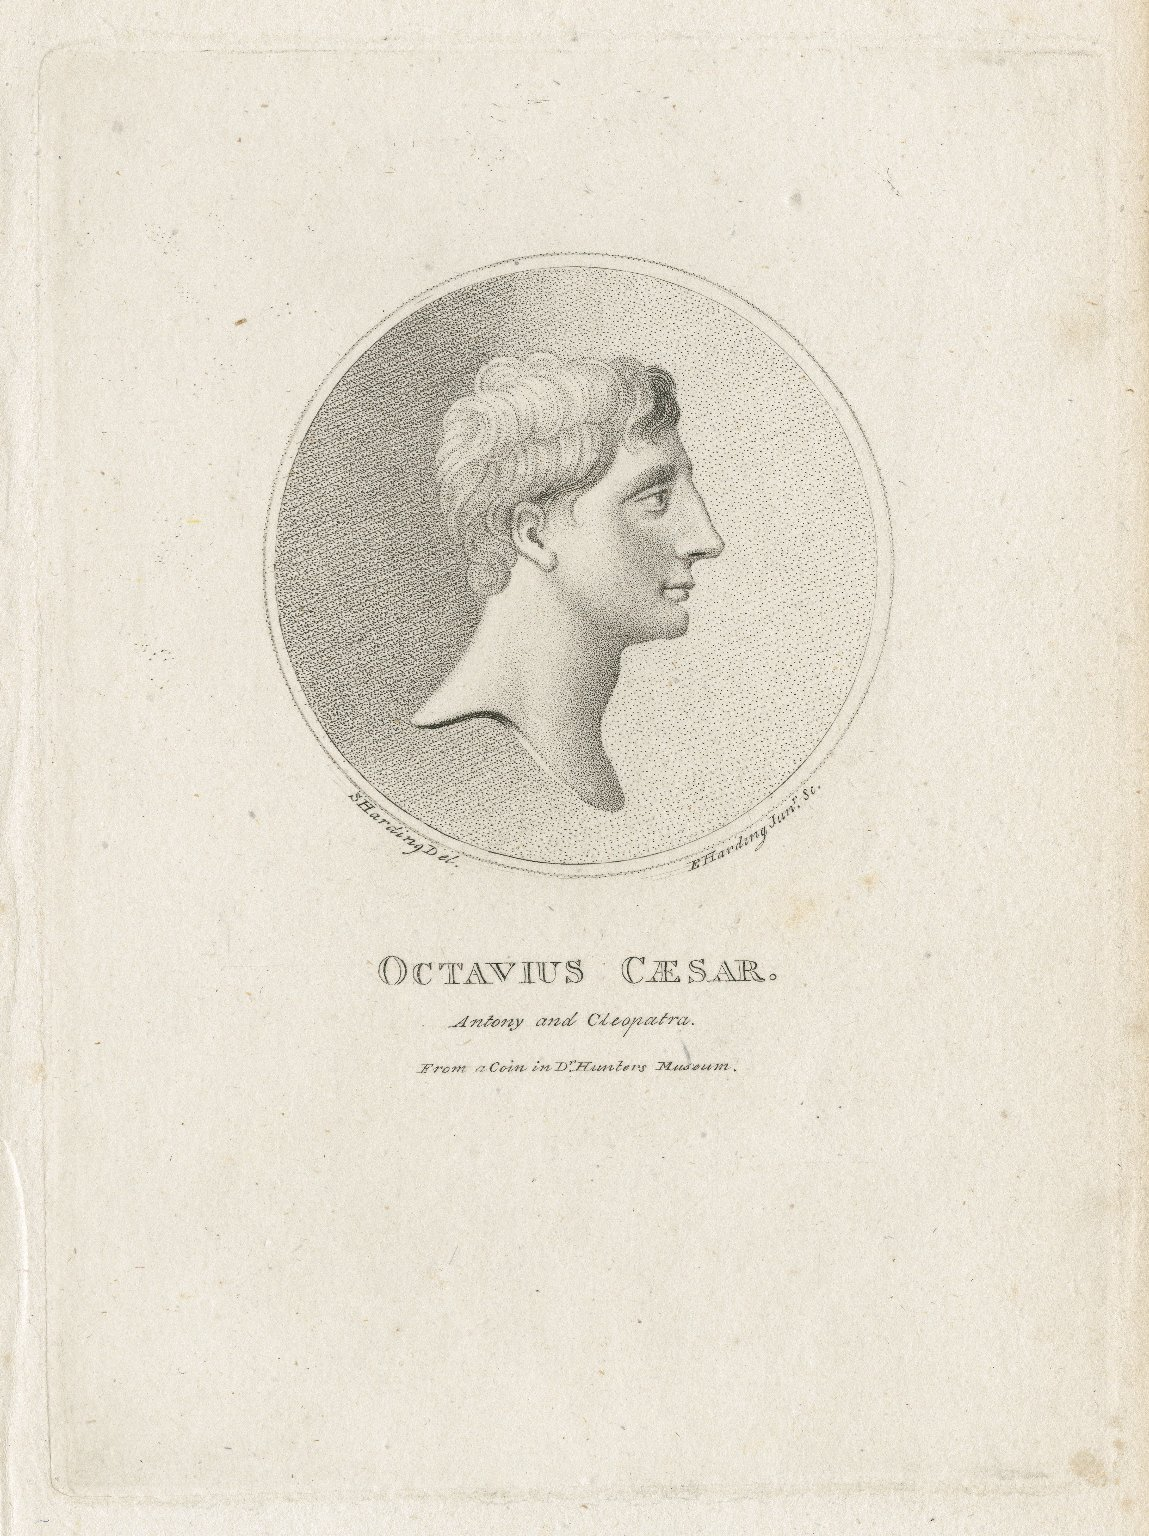 Octavius Caesar [from Shakespeare's play] Antony and Cleopatra, from a coin in Dr. Hunters museum [graphic] / S. Harding, del. ; E. Harding Junr., sc.